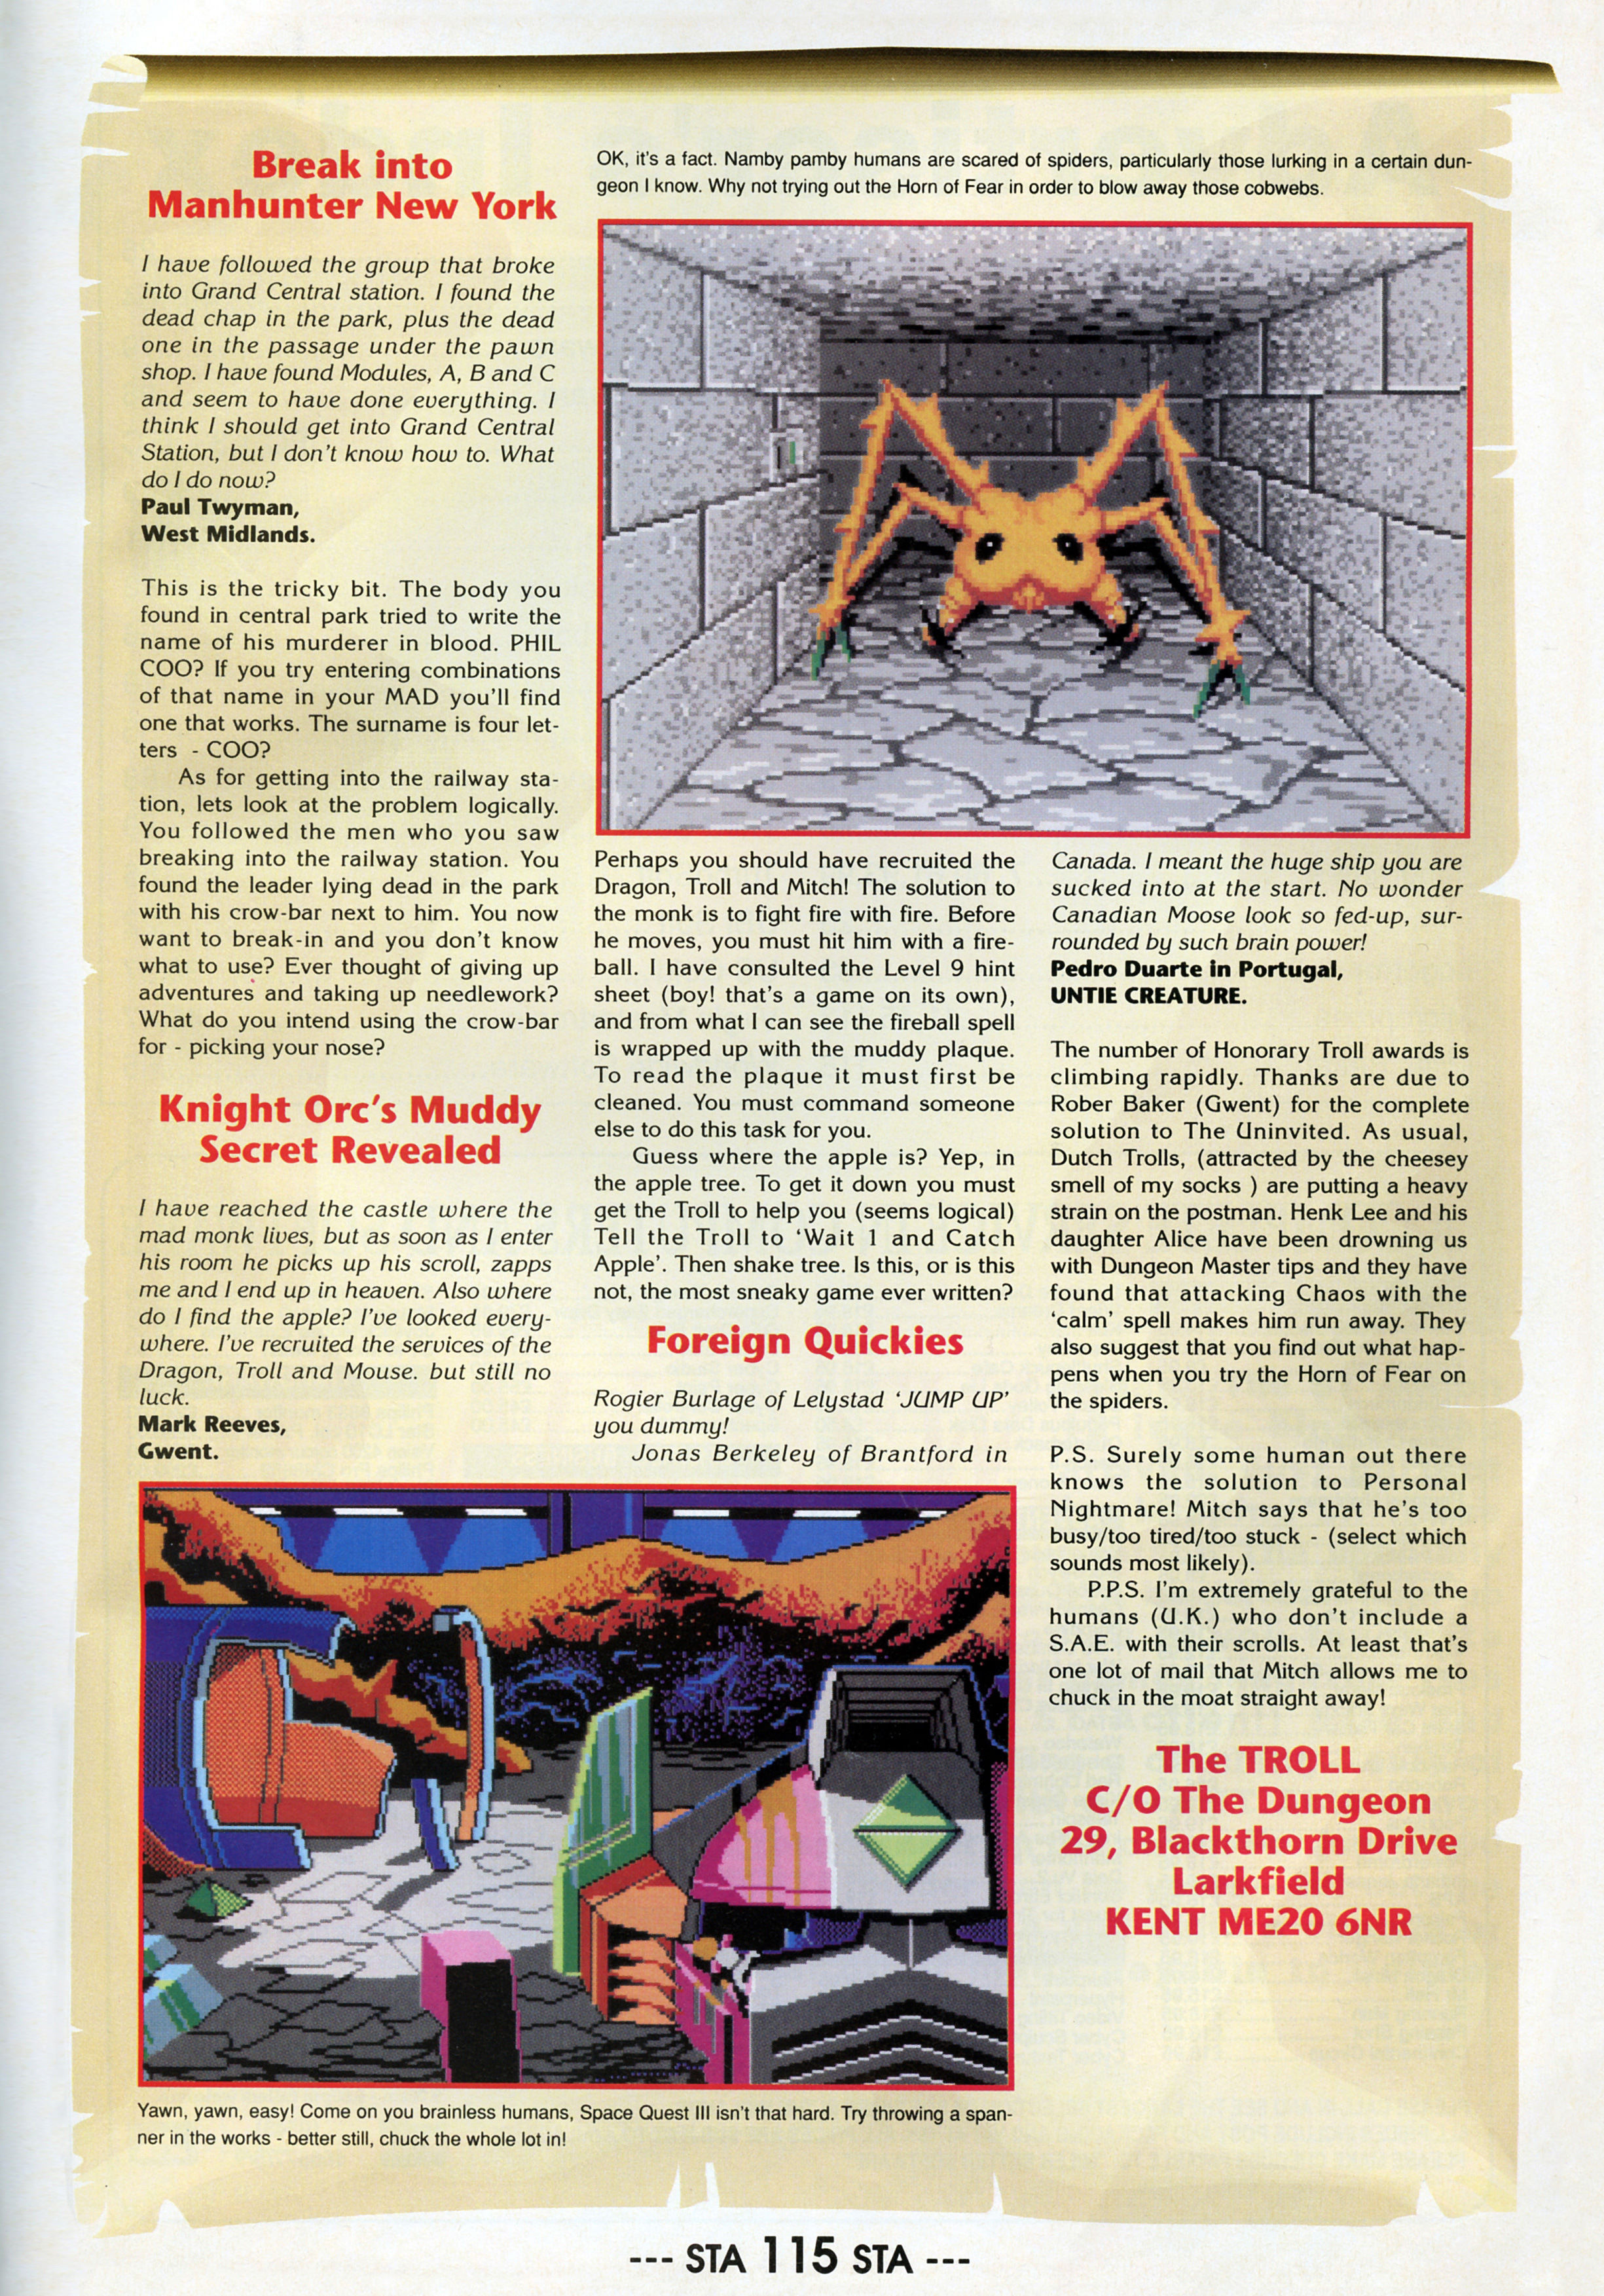 Dungeon Master Hints published in British magazine 'ST Action', Issue #20 December 1989, Page 115